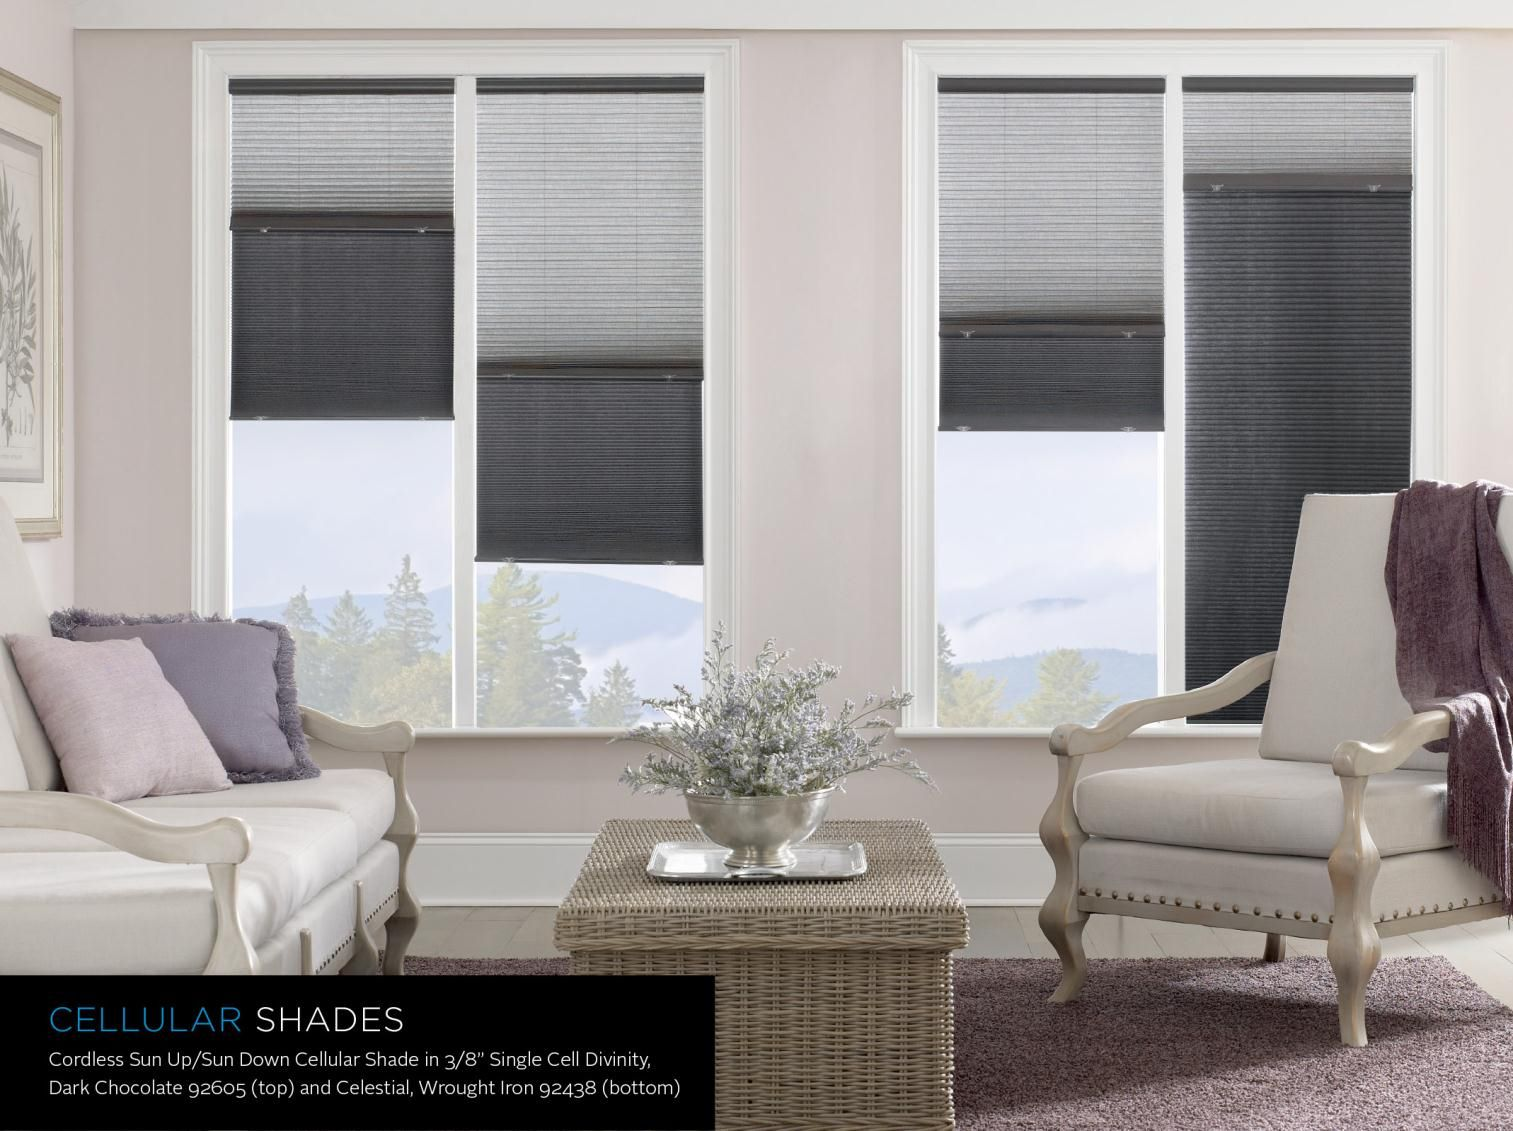 These Signature Series Cellular Shades Offer The Sun Up